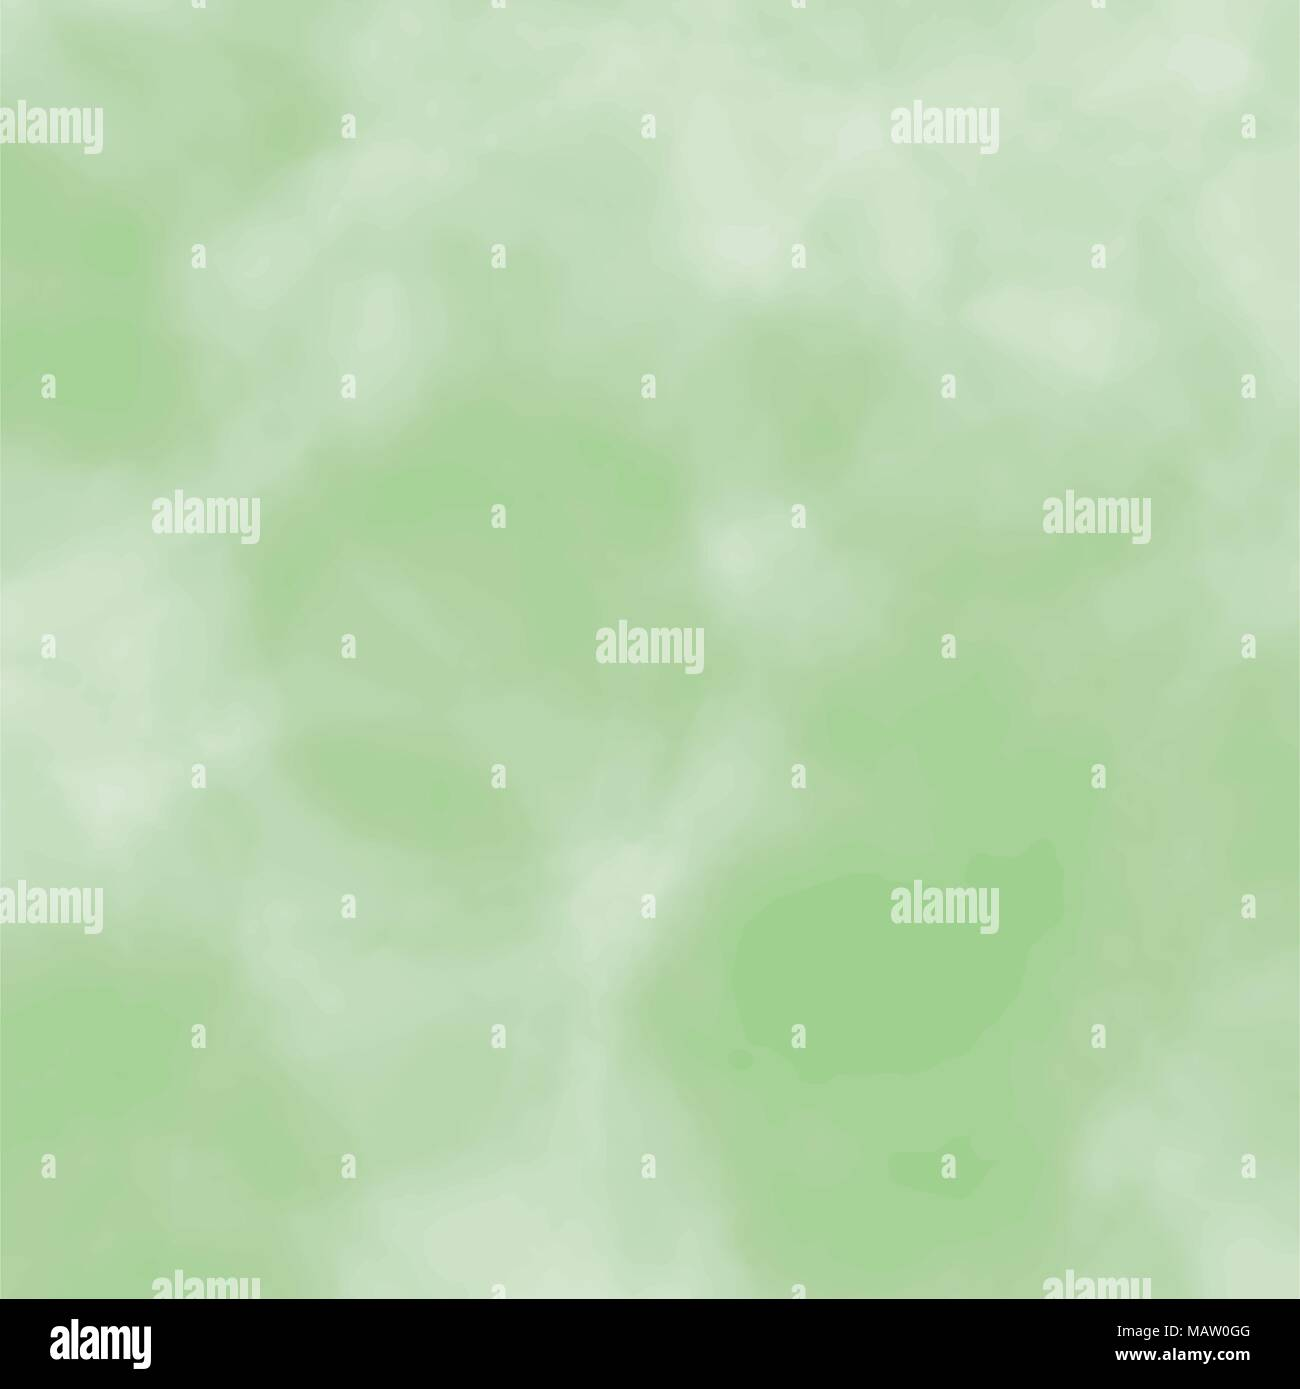 green watercolor blurred background pattern, vector illustration - Stock Vector